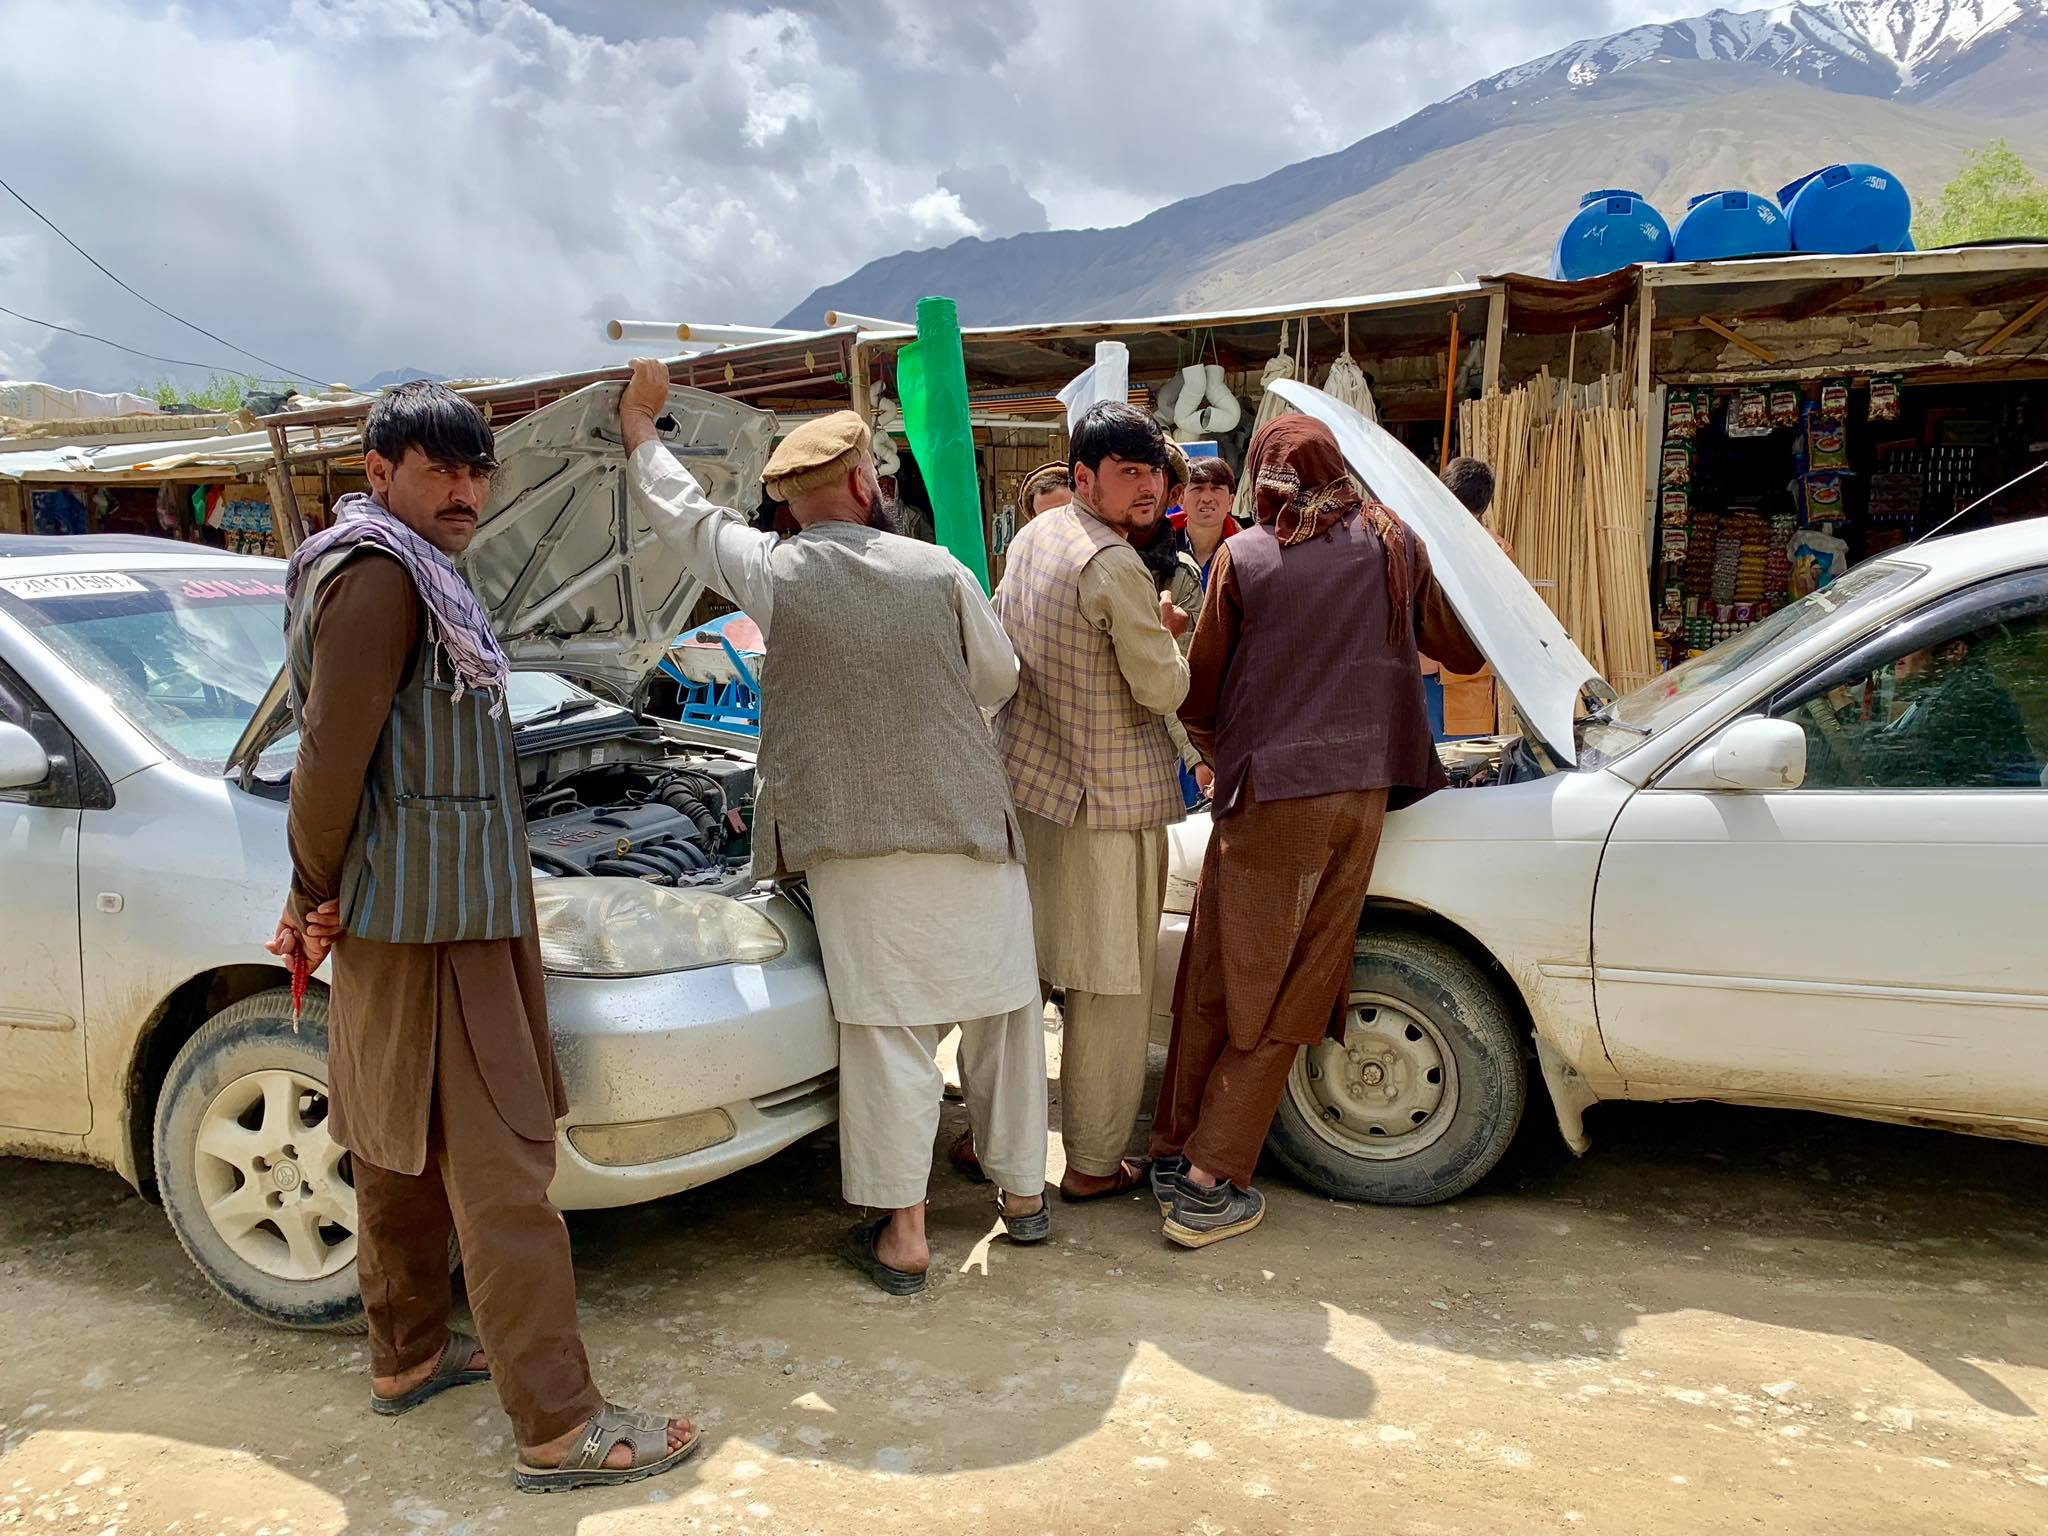 Kach Solo Travels in 2019 AFGHANISTAN, my 127th country26.jpg